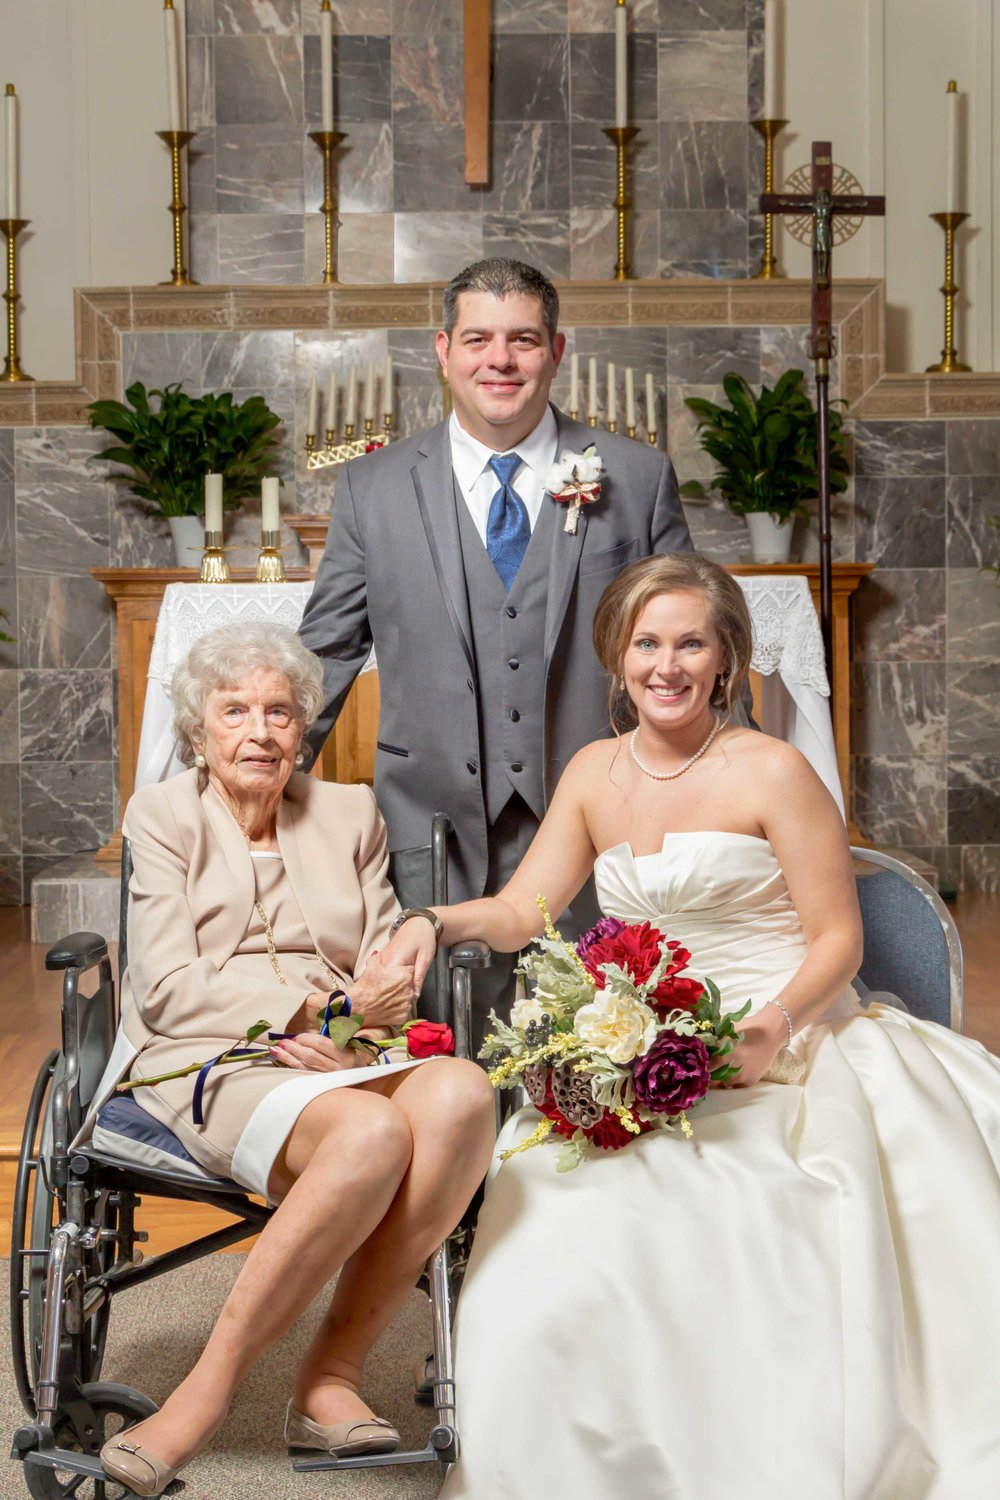 Kyle, Lindsey, and Memaw.